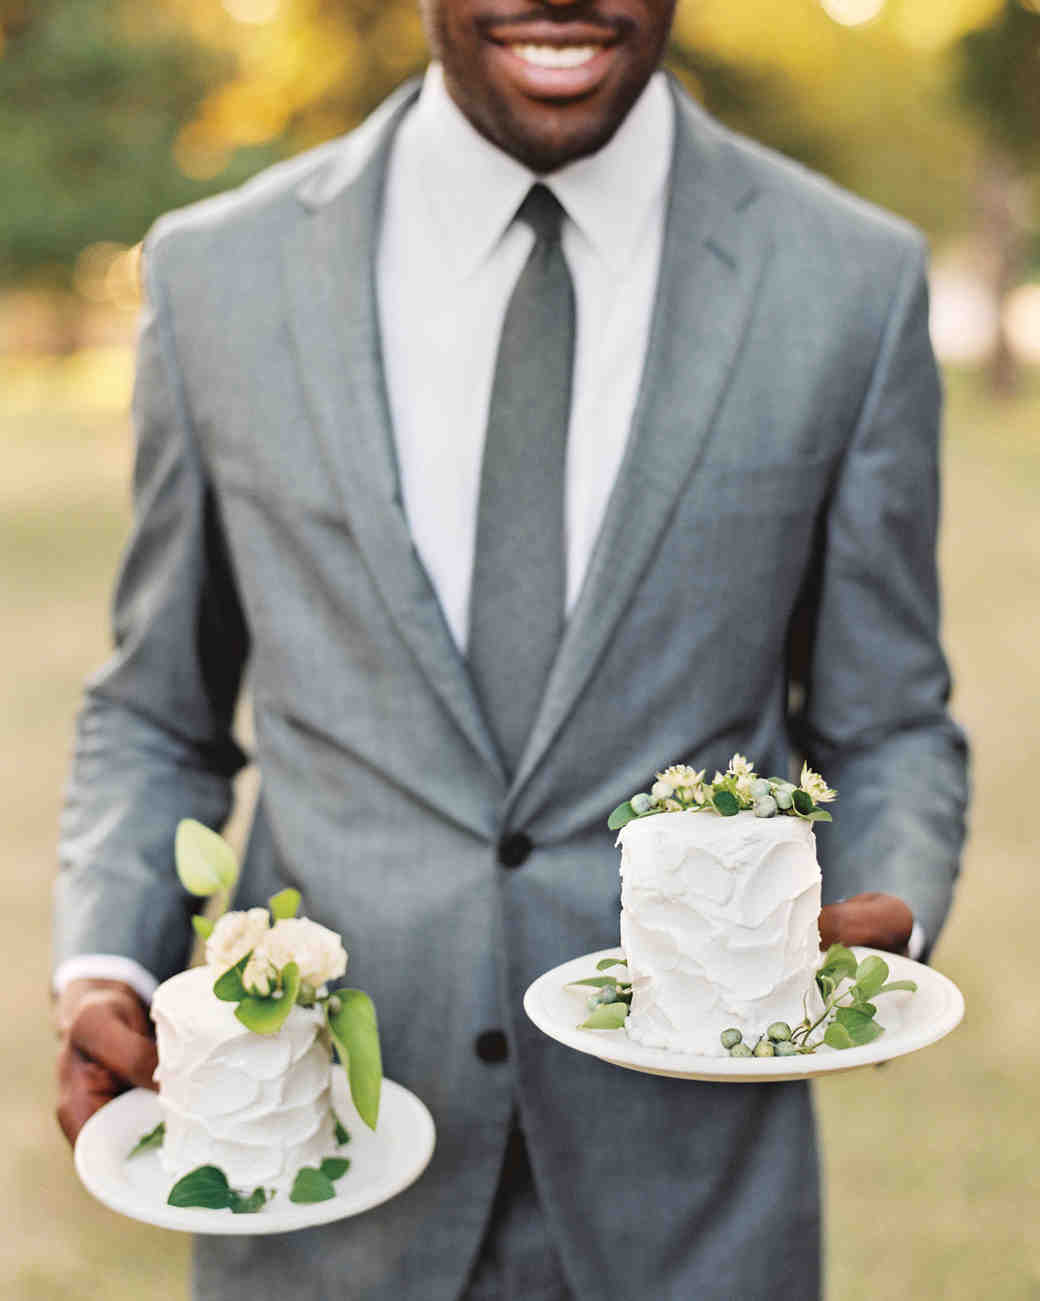 Individual White Wedding Cakes Topped with Greenery